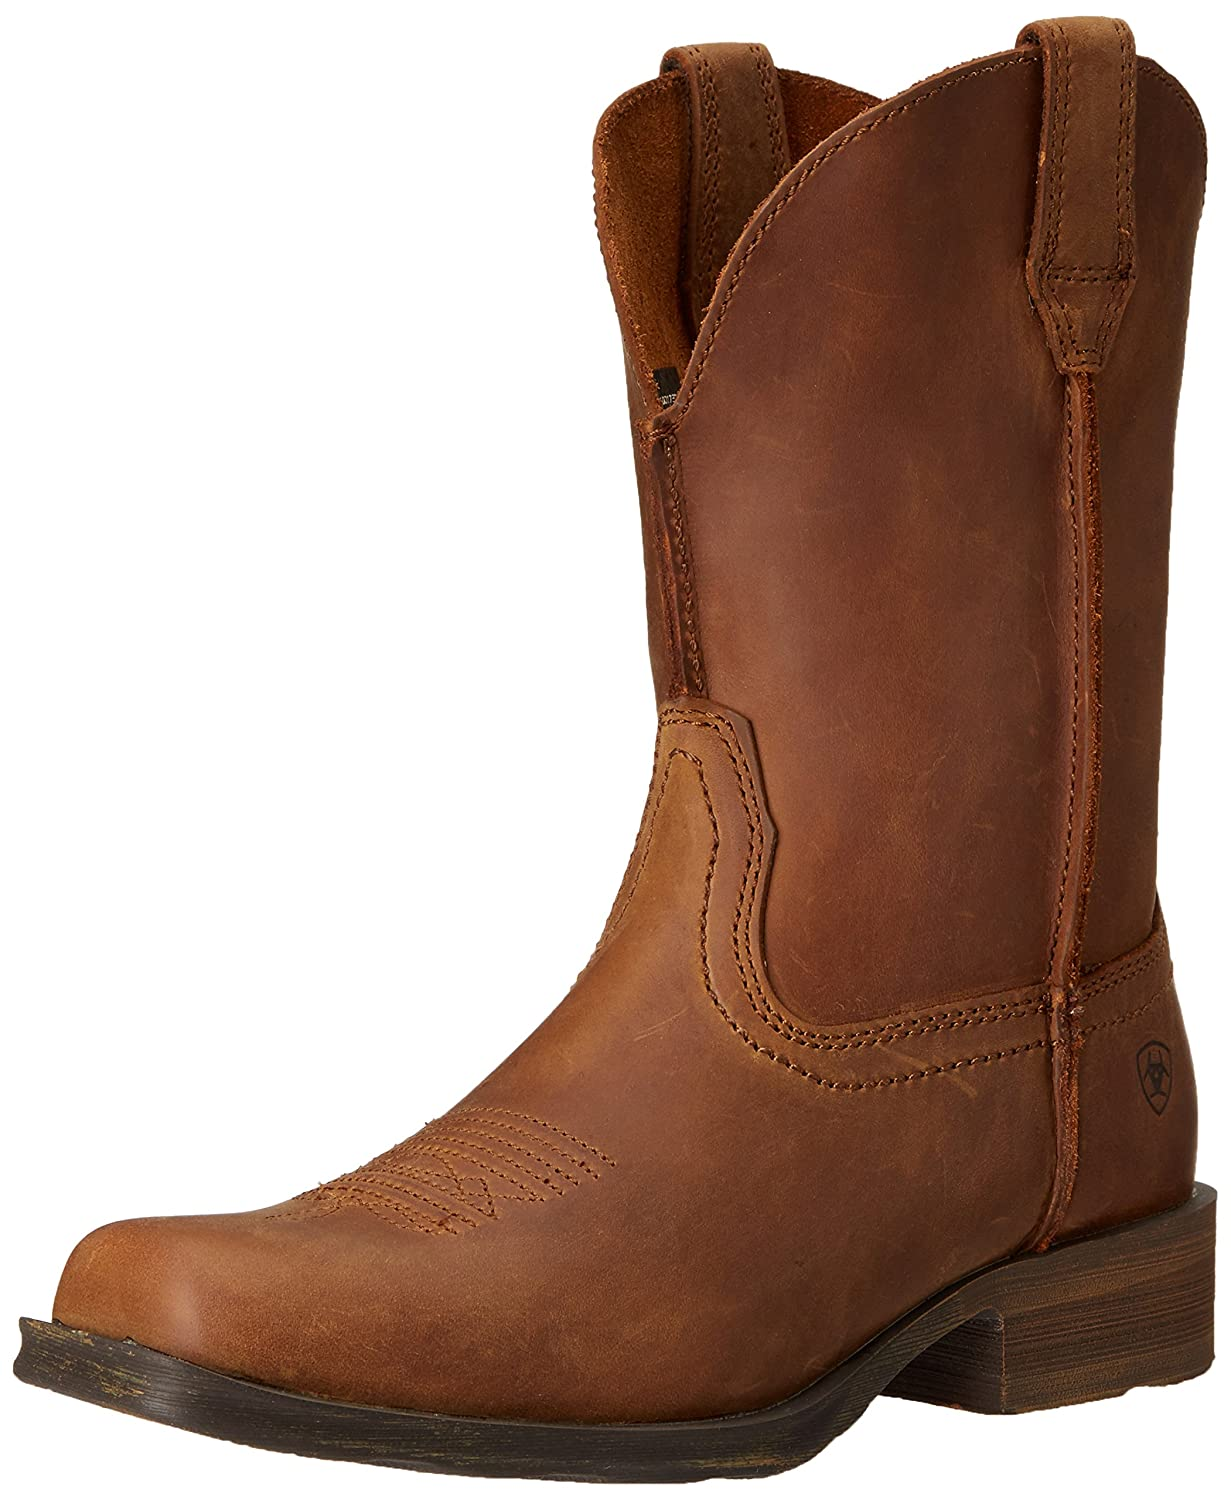 Image of Pet Supplies Ariat Women's Rambler Western Cowboy Boot